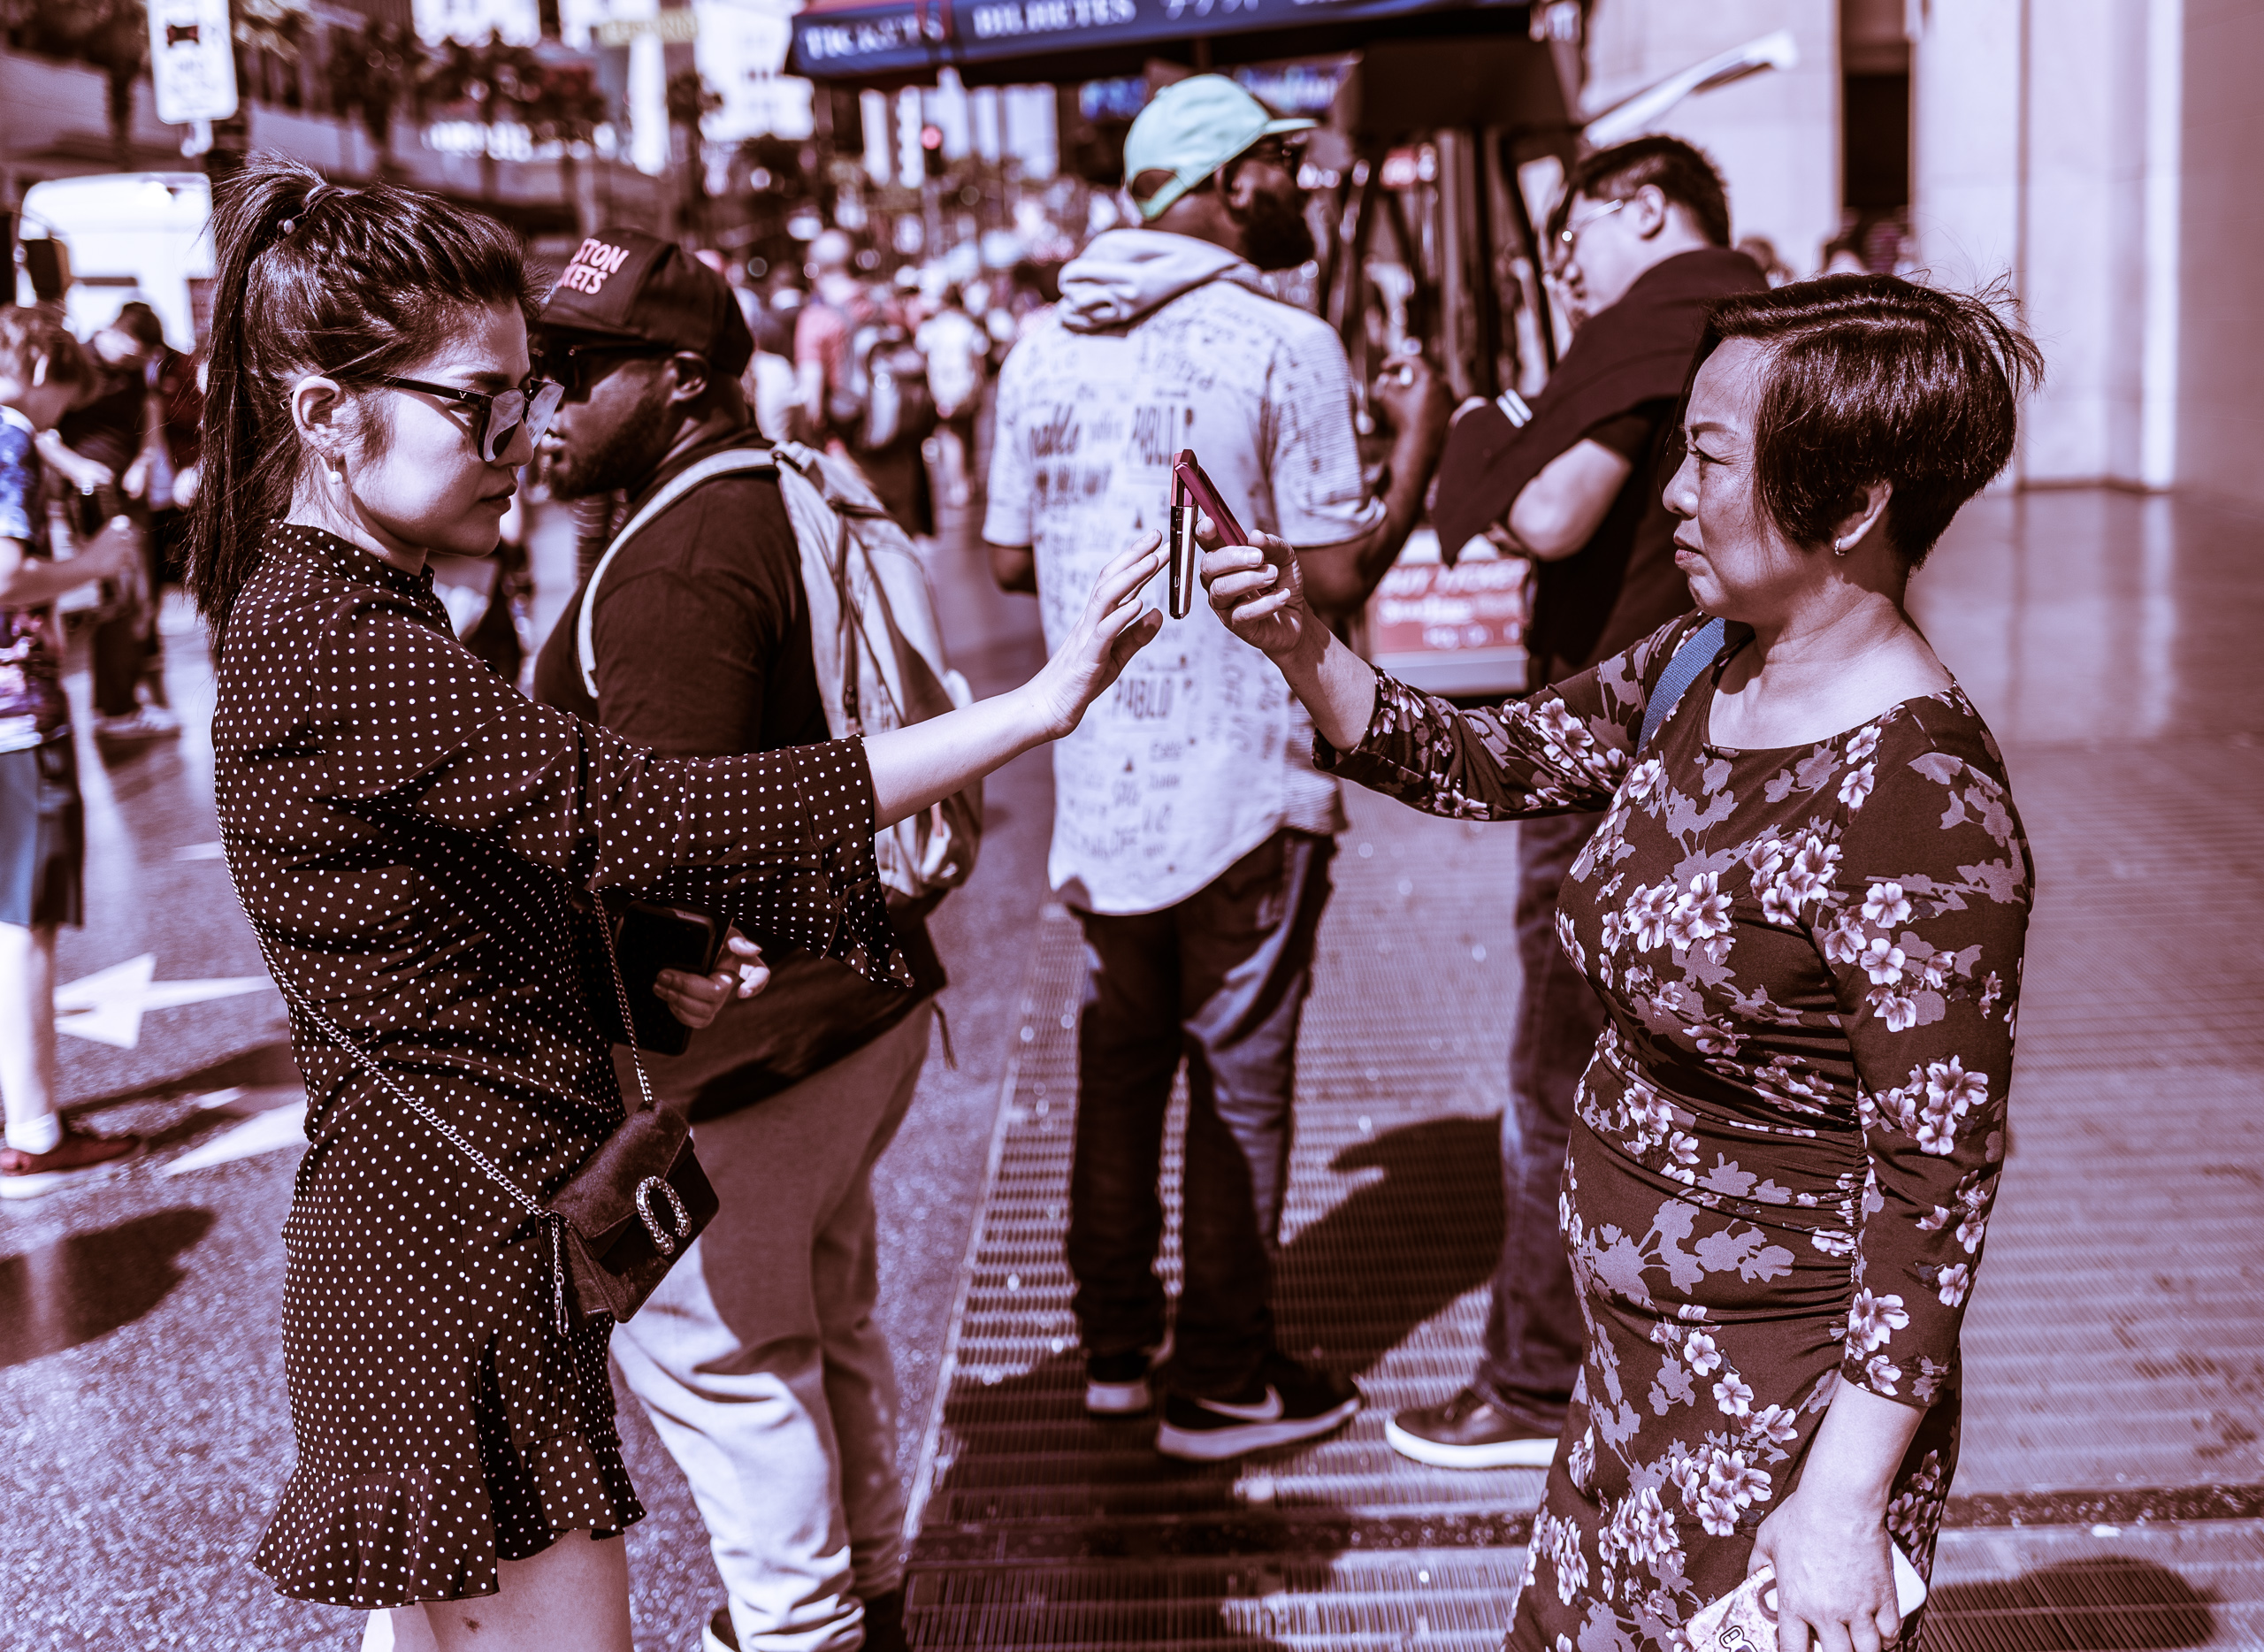 Two women stand on the Hollywood Walk of Fame and face each other. They have a cell phone between them. One holds the phone and the other makes a selection or touches something on the phone.